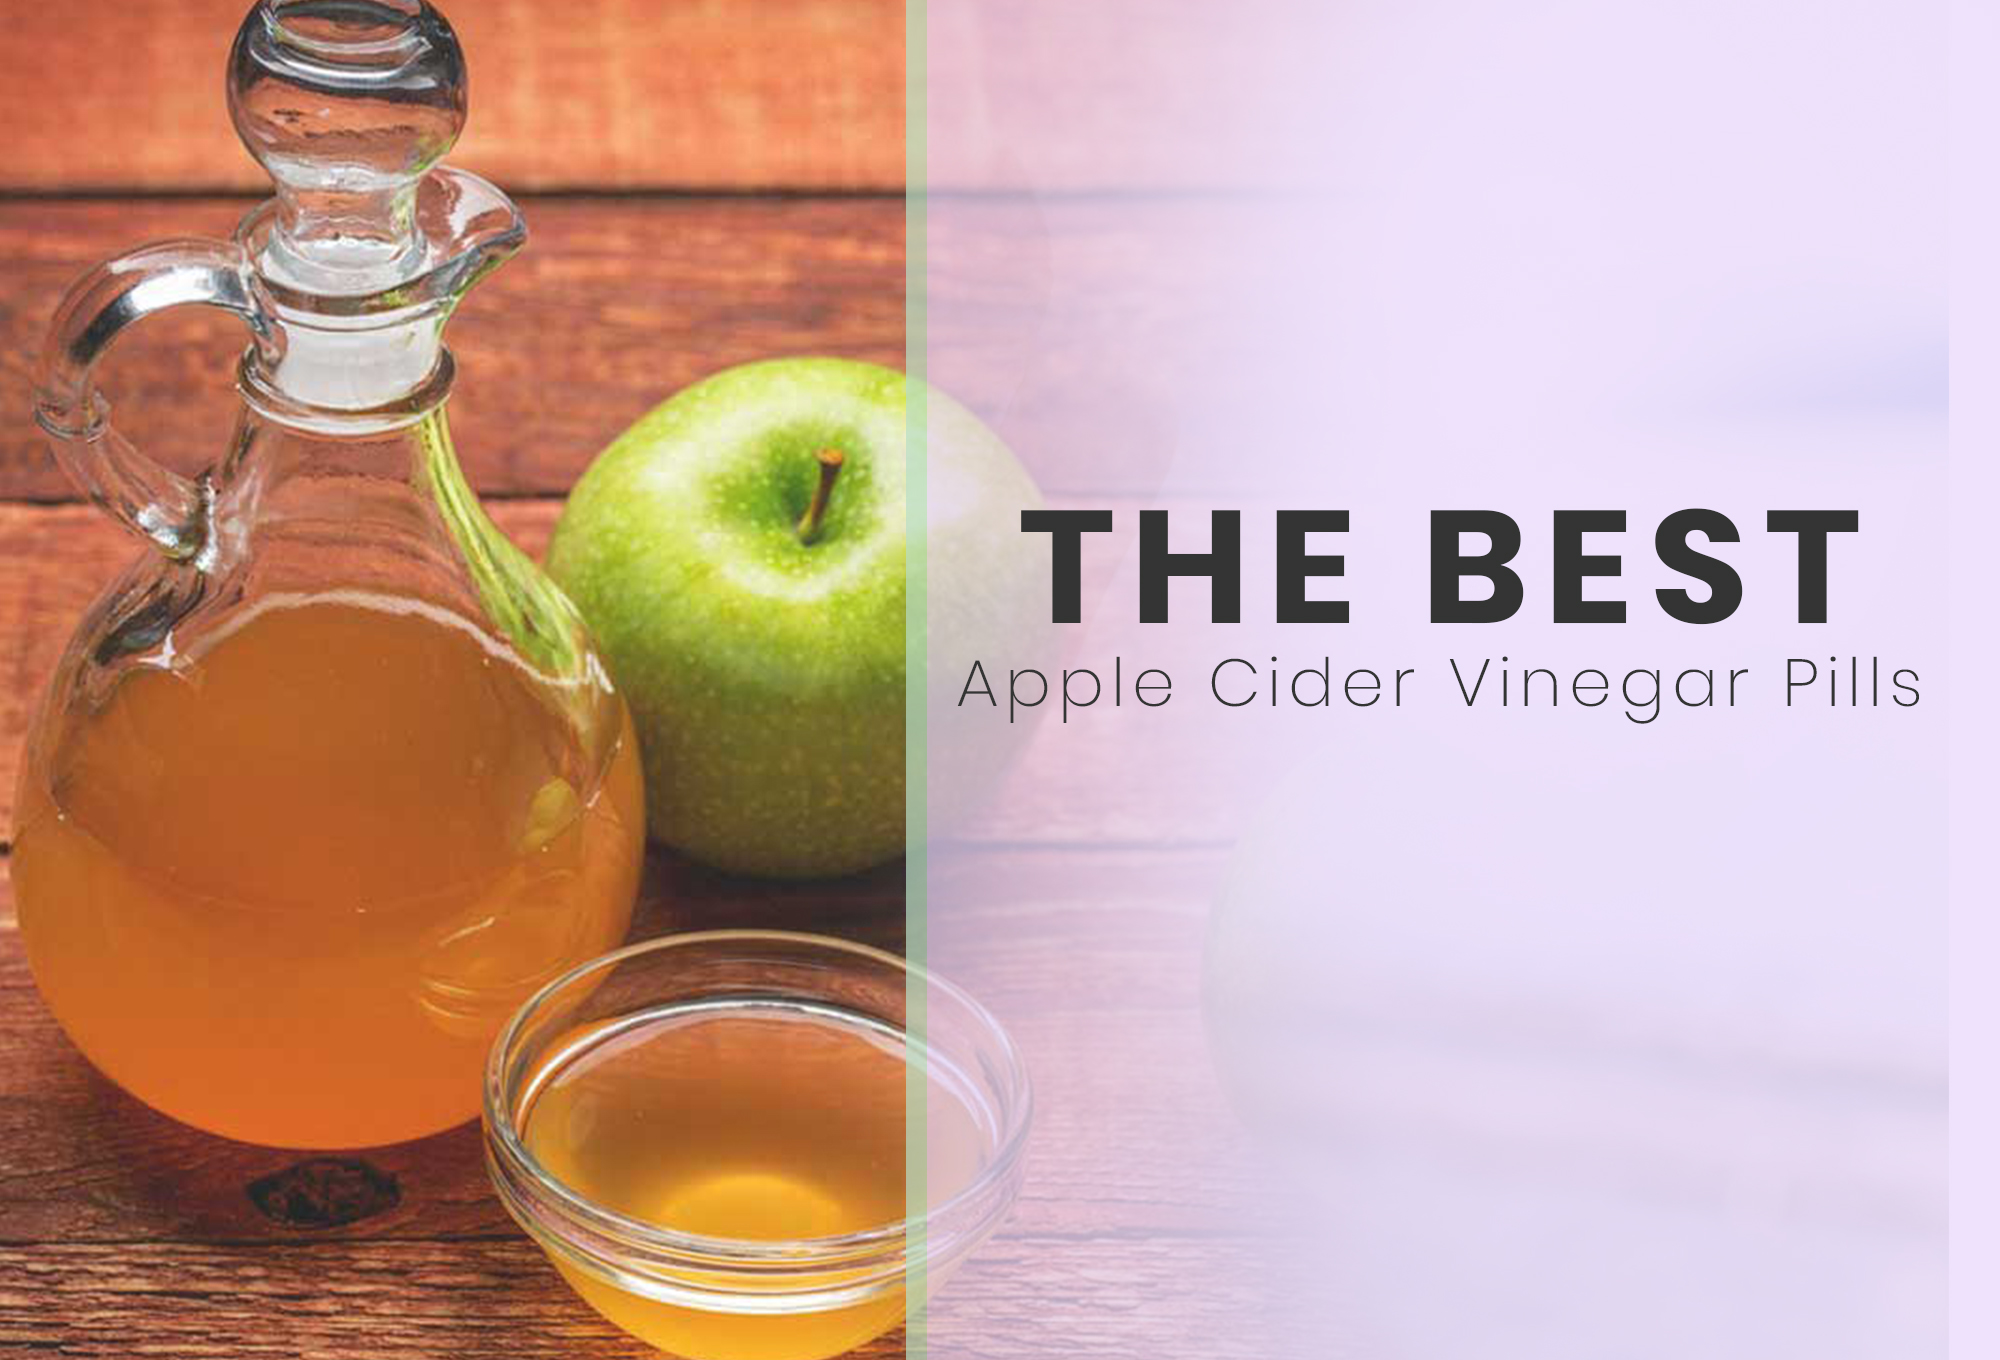 Best Apple Cider Vinegar Pills November 2019 Reviews